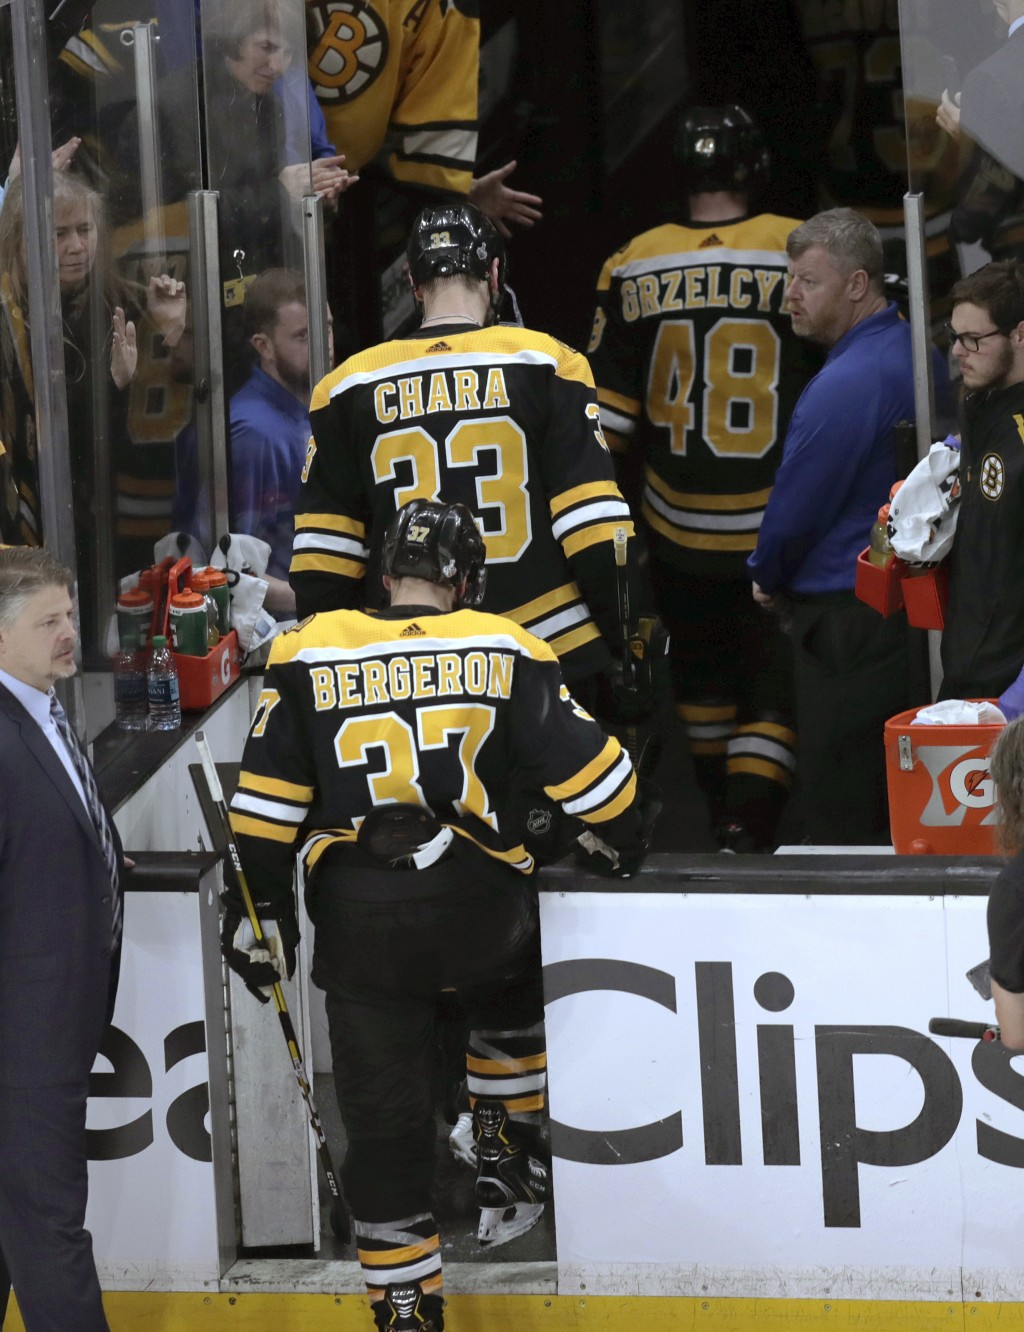 Boston Bruins' Patrice Bergeron (37), Zdeno Chara (33), of Slovakia, and Matt Grzelcyk (48) leave the ice after the St. Louis defeated the Bruins in G